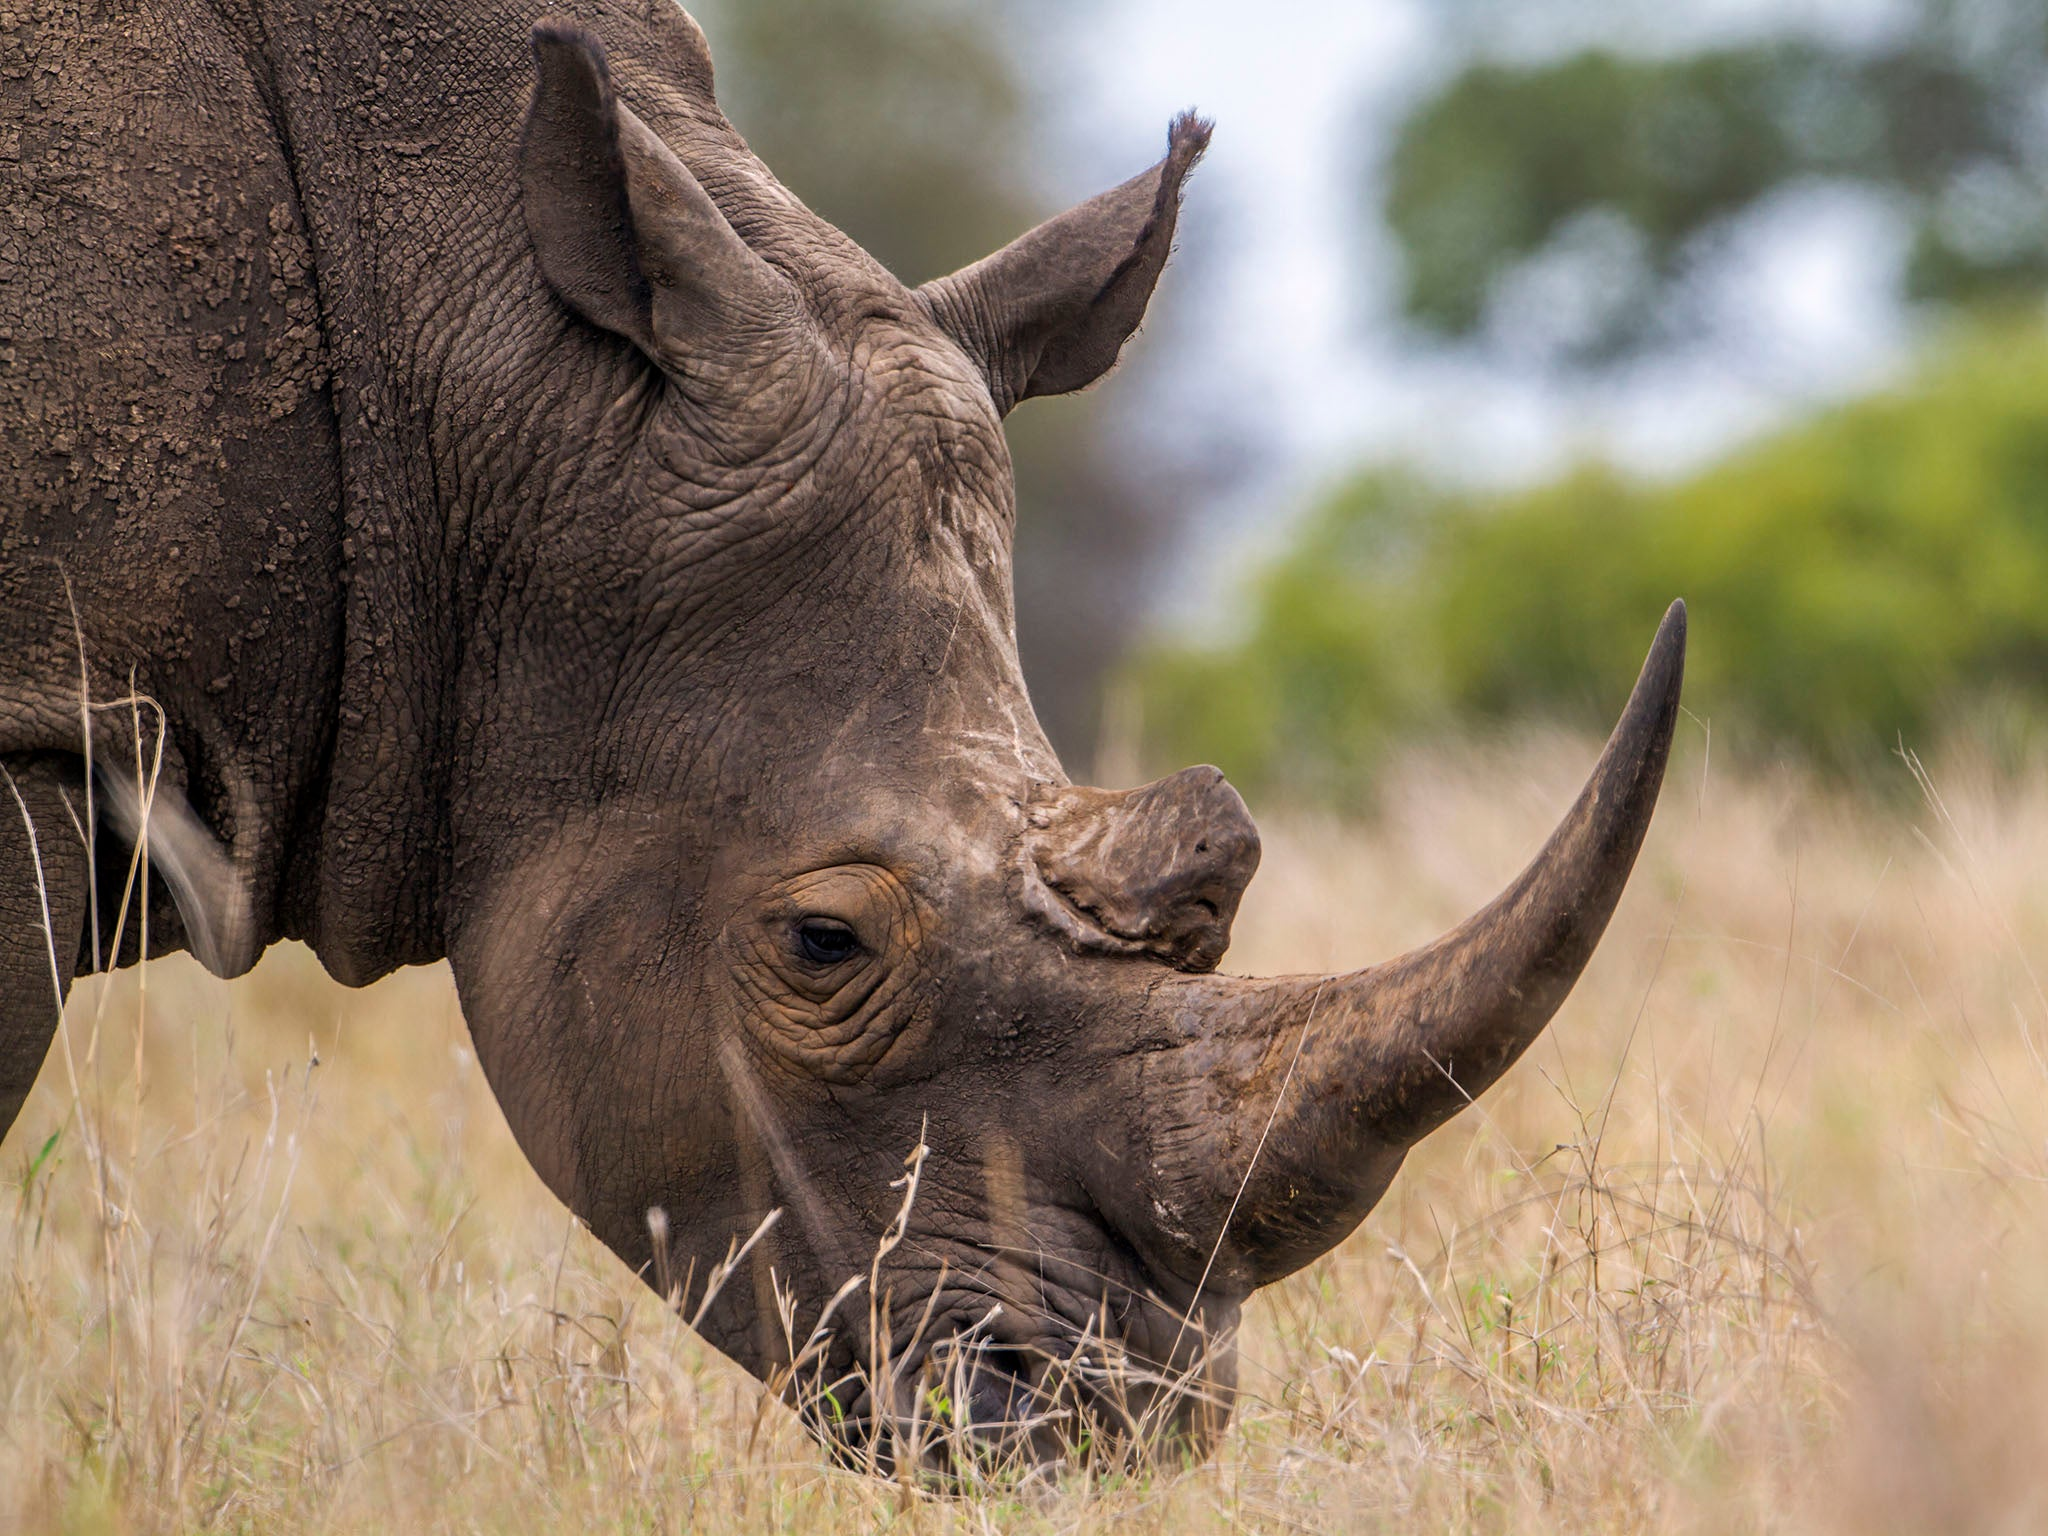 Will fake horns save the rhino from extinction or will it cause more harm?